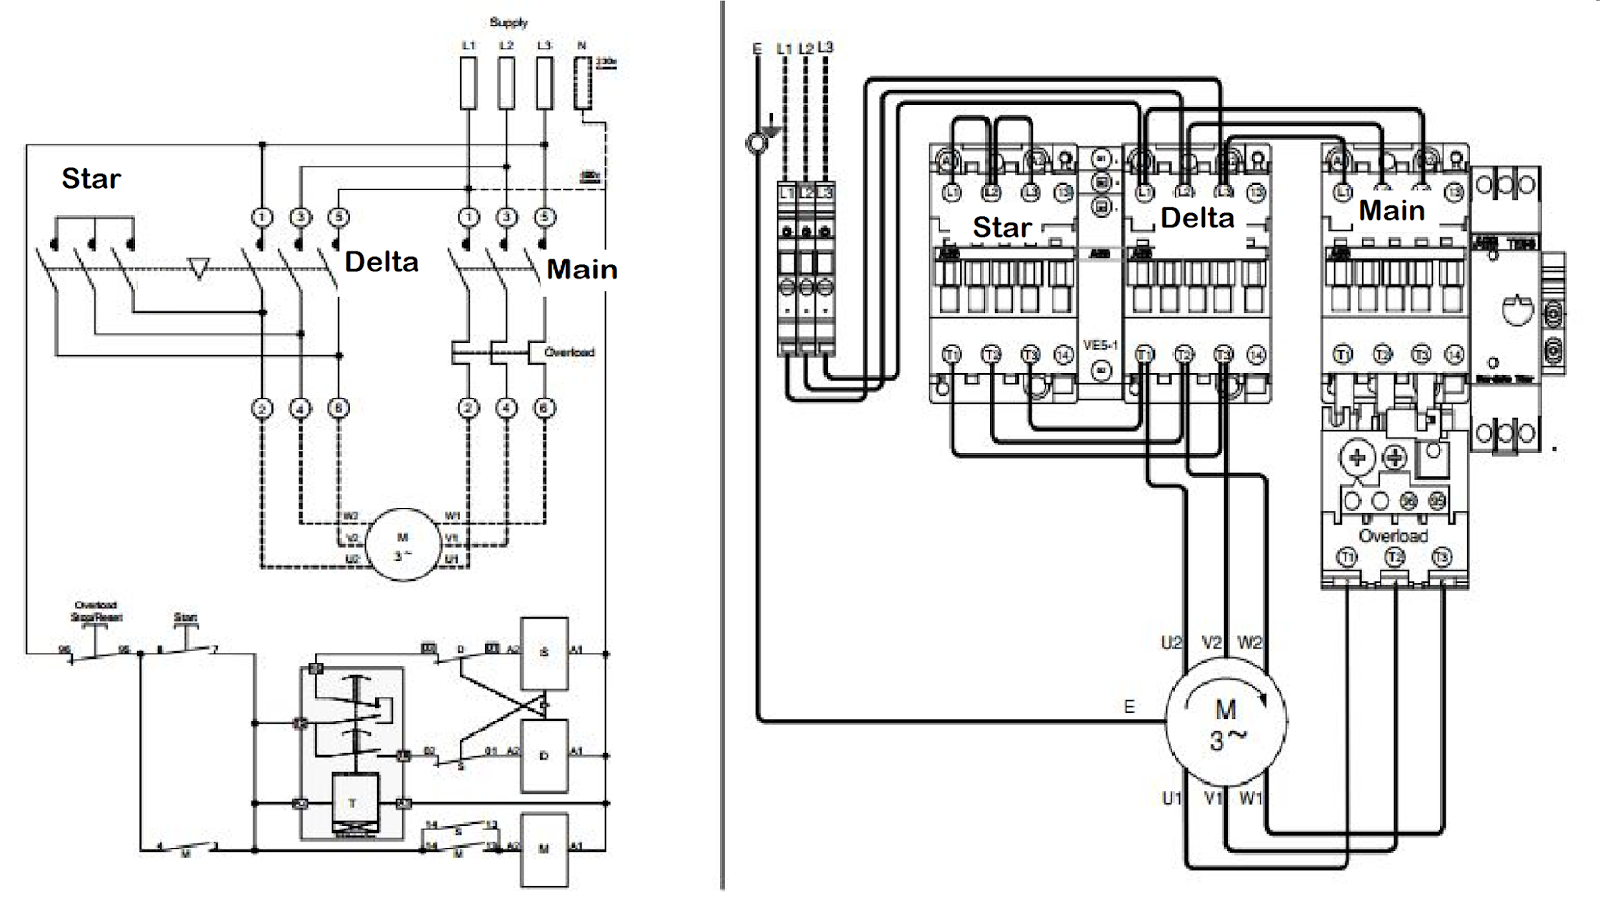 wiring diagram of star delta starter connection diagram of star rh hg4 co star delta starter wiring diagram pdf motor star delta wiring diagram pdf